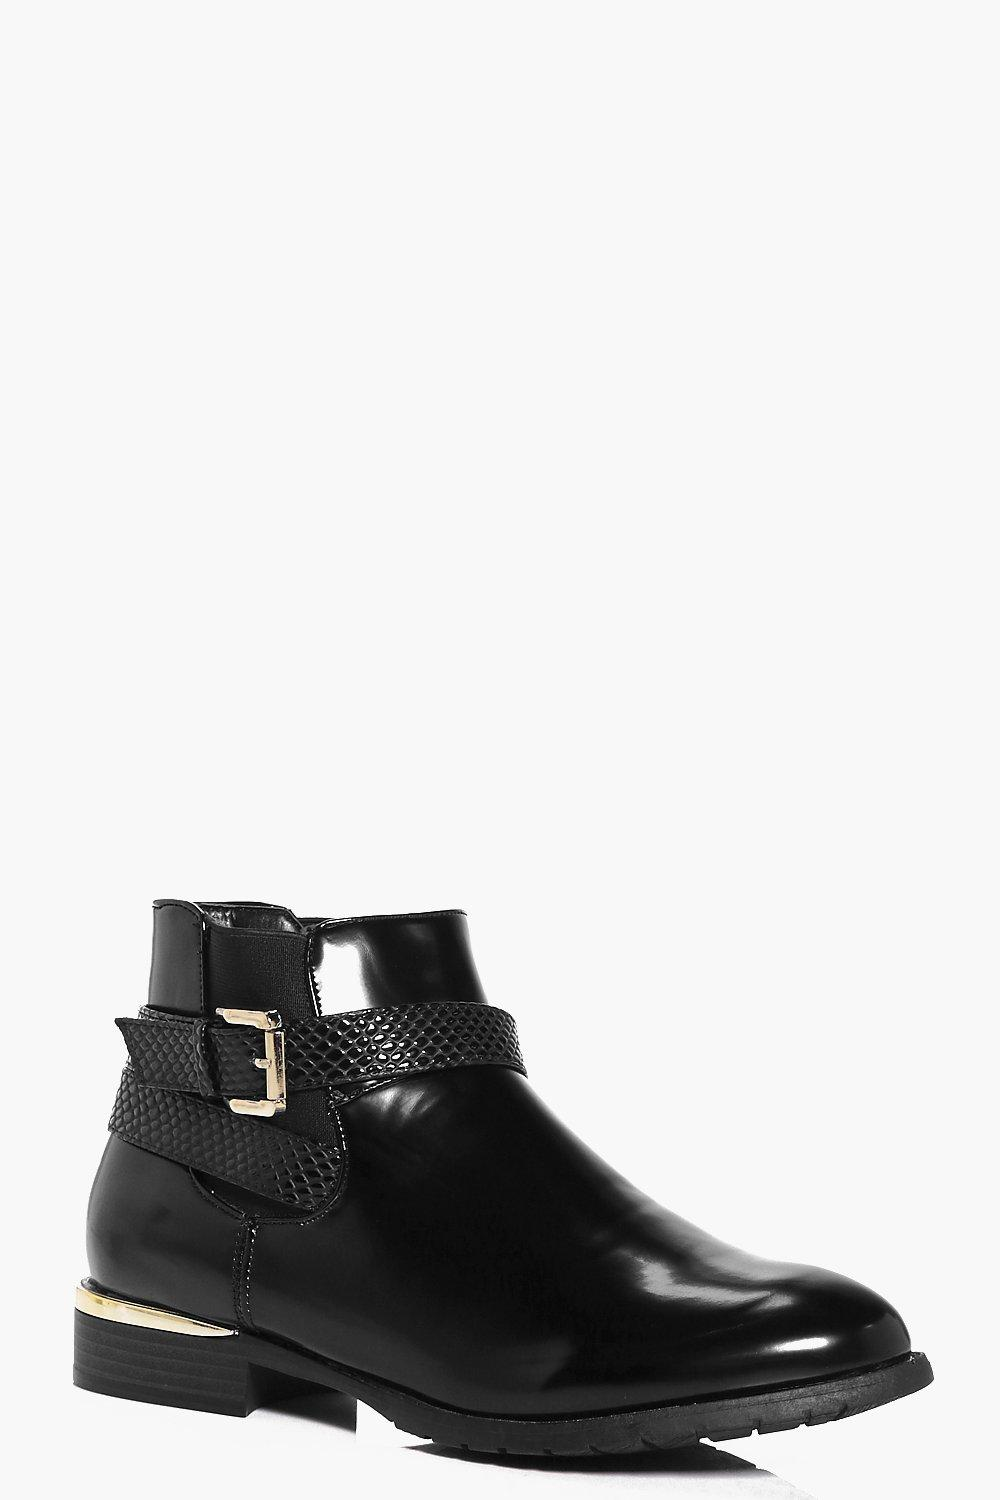 Grace Gold Trim Wrap Strap Chelsea Boot